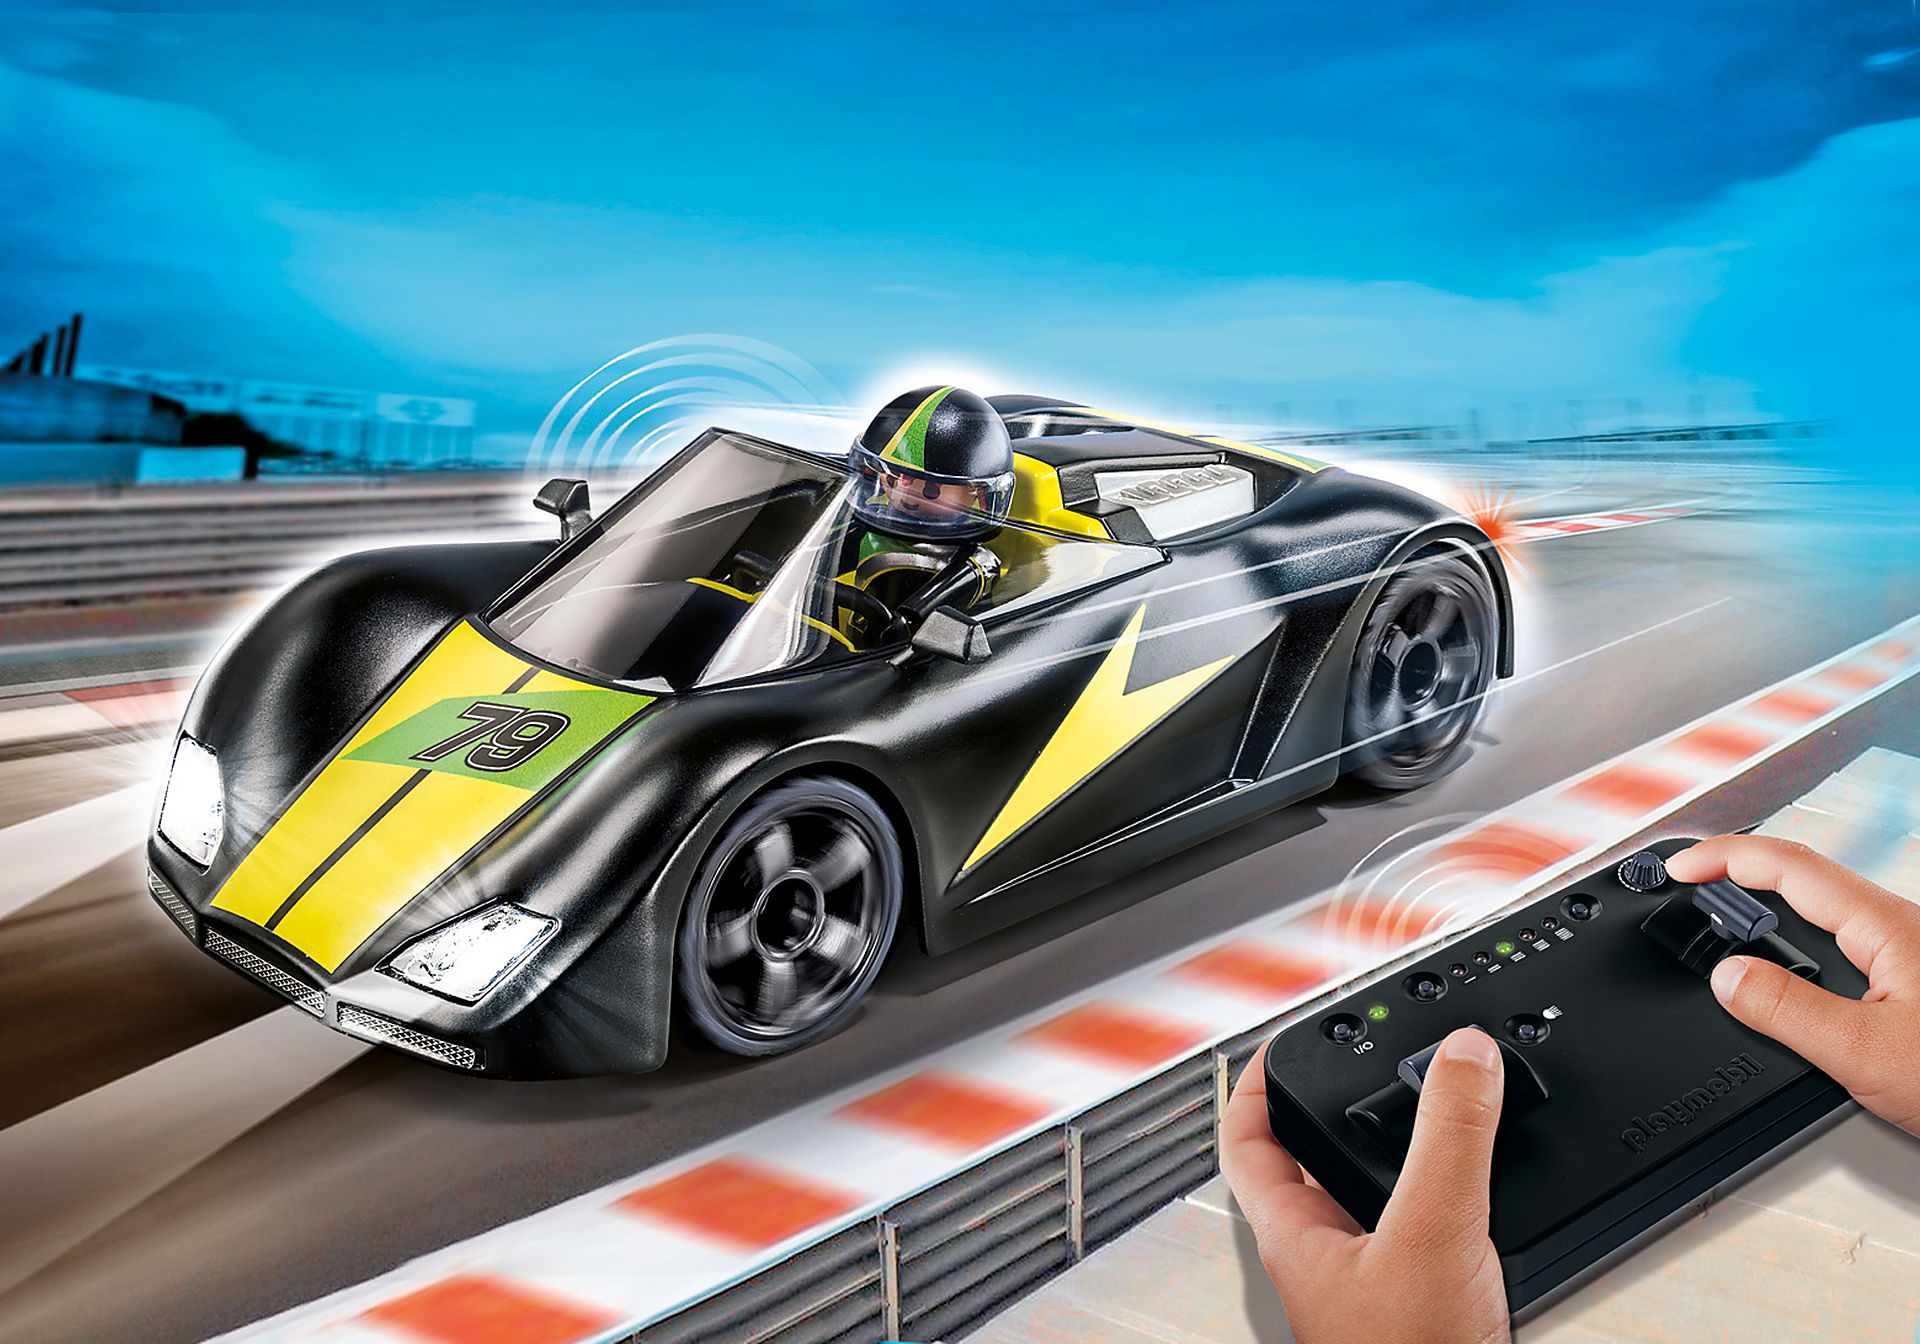 http://media.playmobil.com/i/playmobil/9089_product_detail/Wyścigówka RC Supersport